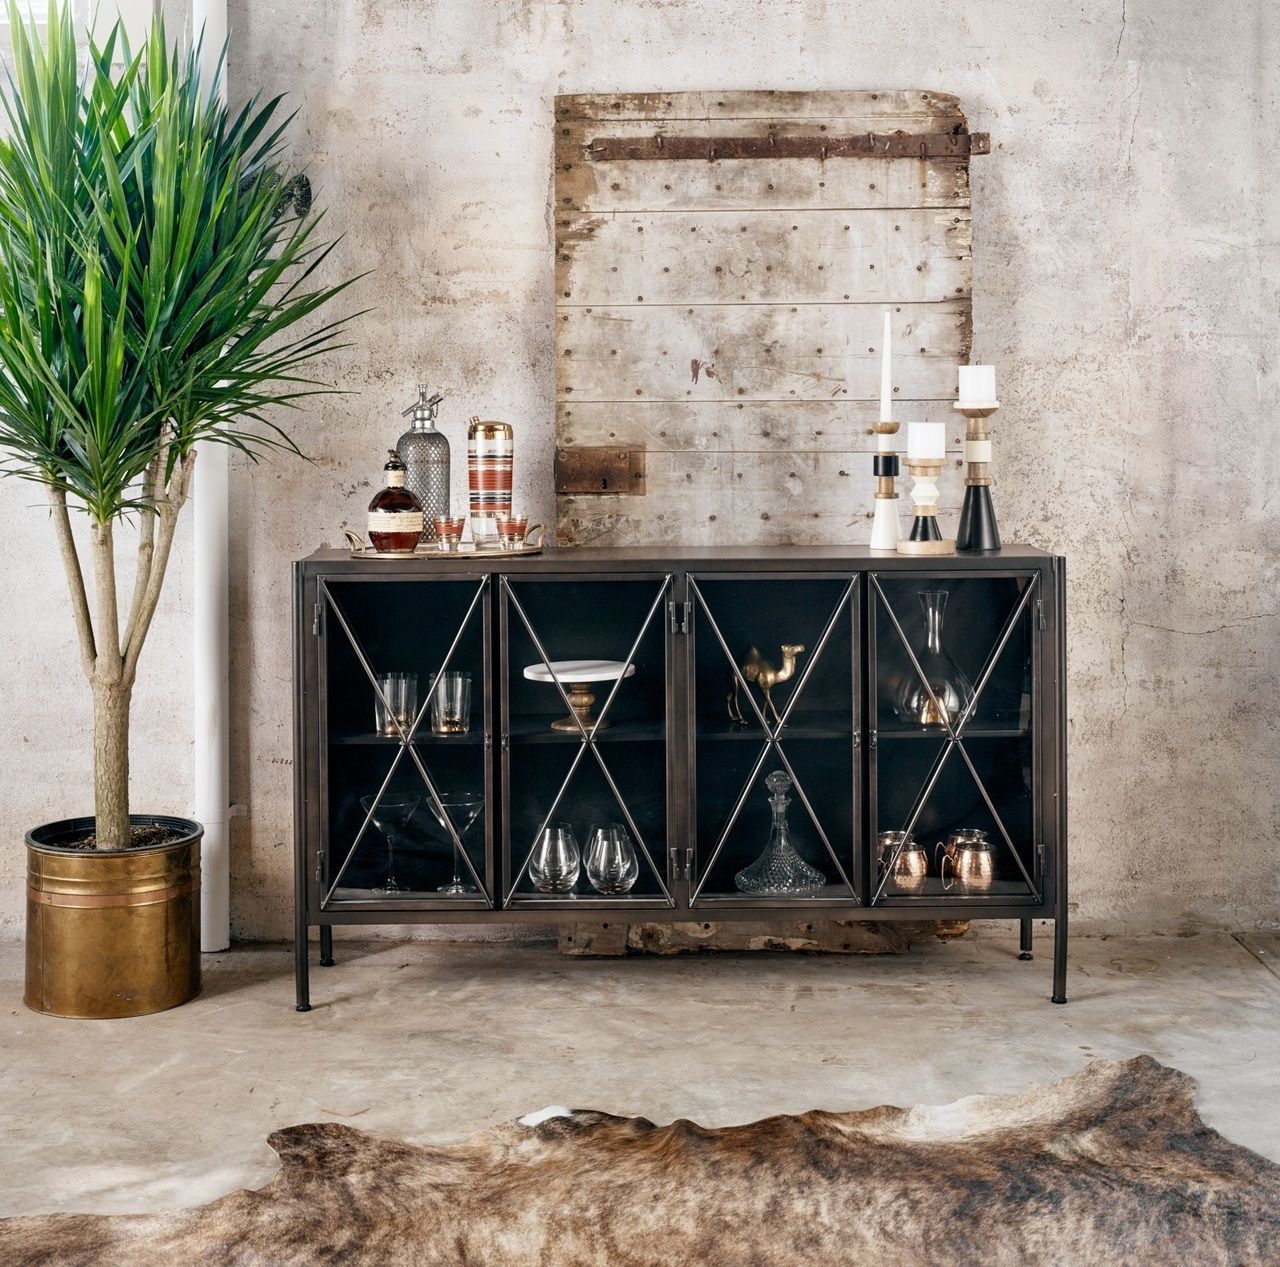 Aged Black Metal Media Console Sideboard | Decorate|Furnishings Throughout Walters Media Console Tables (Gallery 9 of 20)